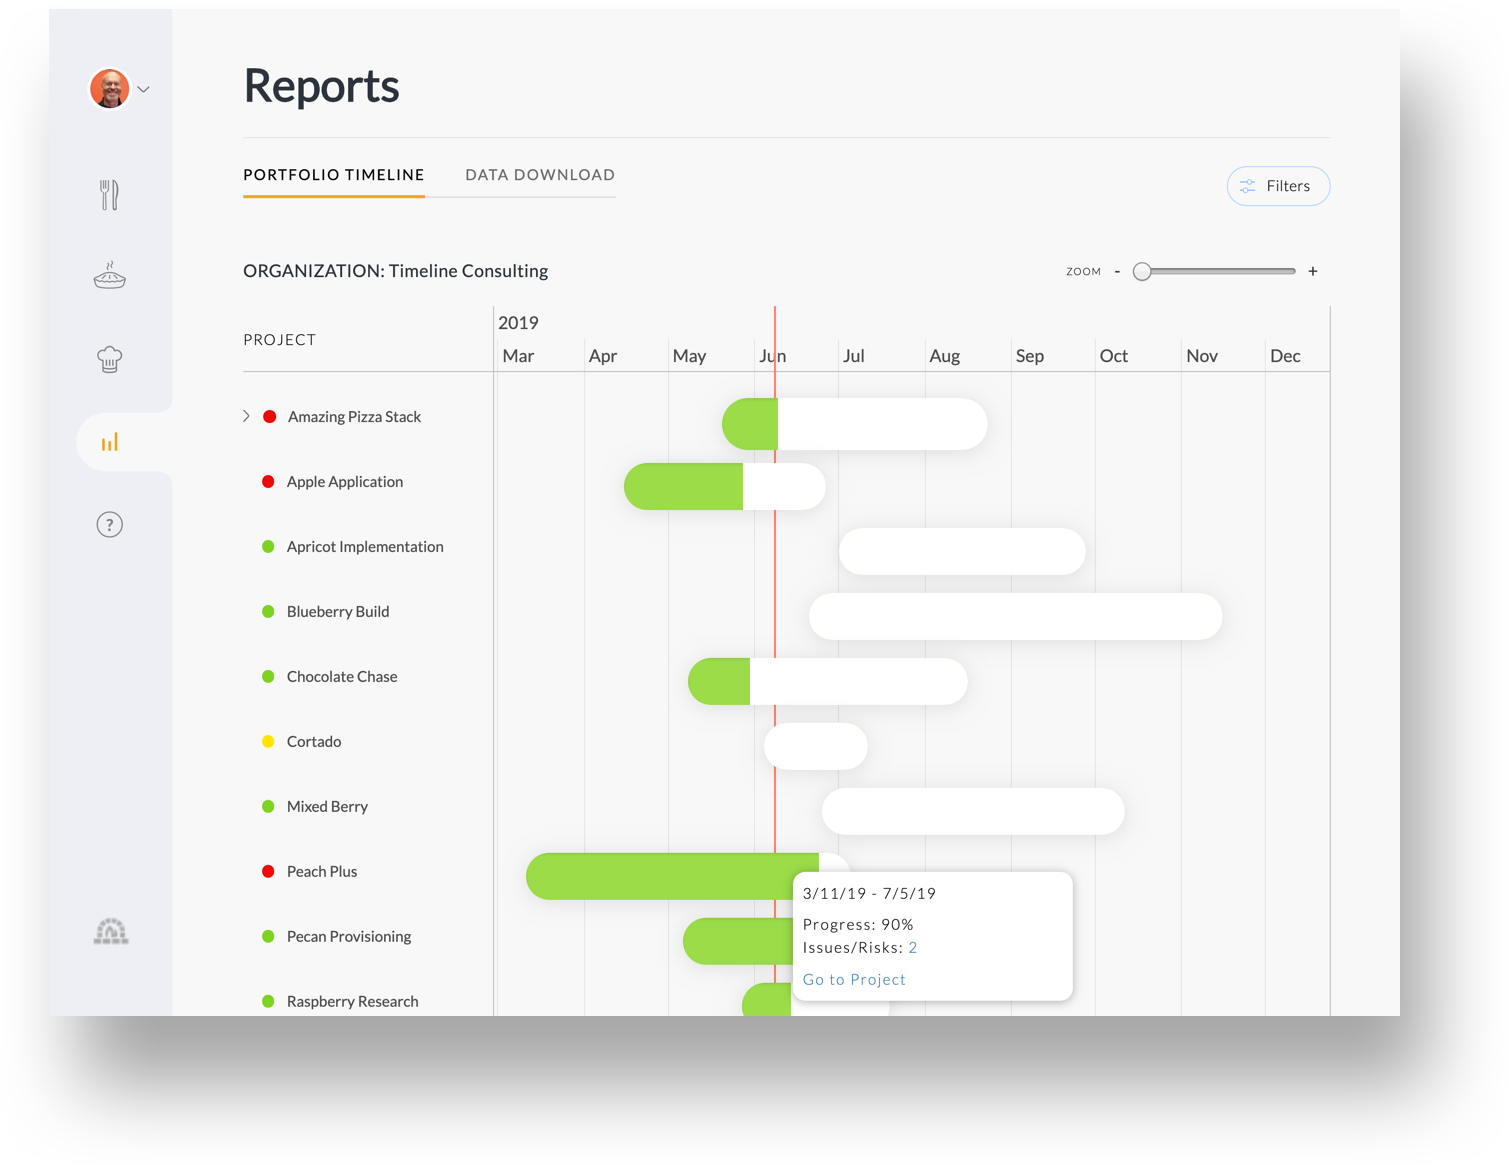 Executive eye candy. - Get the big picture from the Portfolio Timeline report. See your portfolio of projects in a Gantt-style timeline view to quickly see how each projects are doing relative to a timeline. Zoom in for week or day views. Click a bar to get details and then drill down for more information.